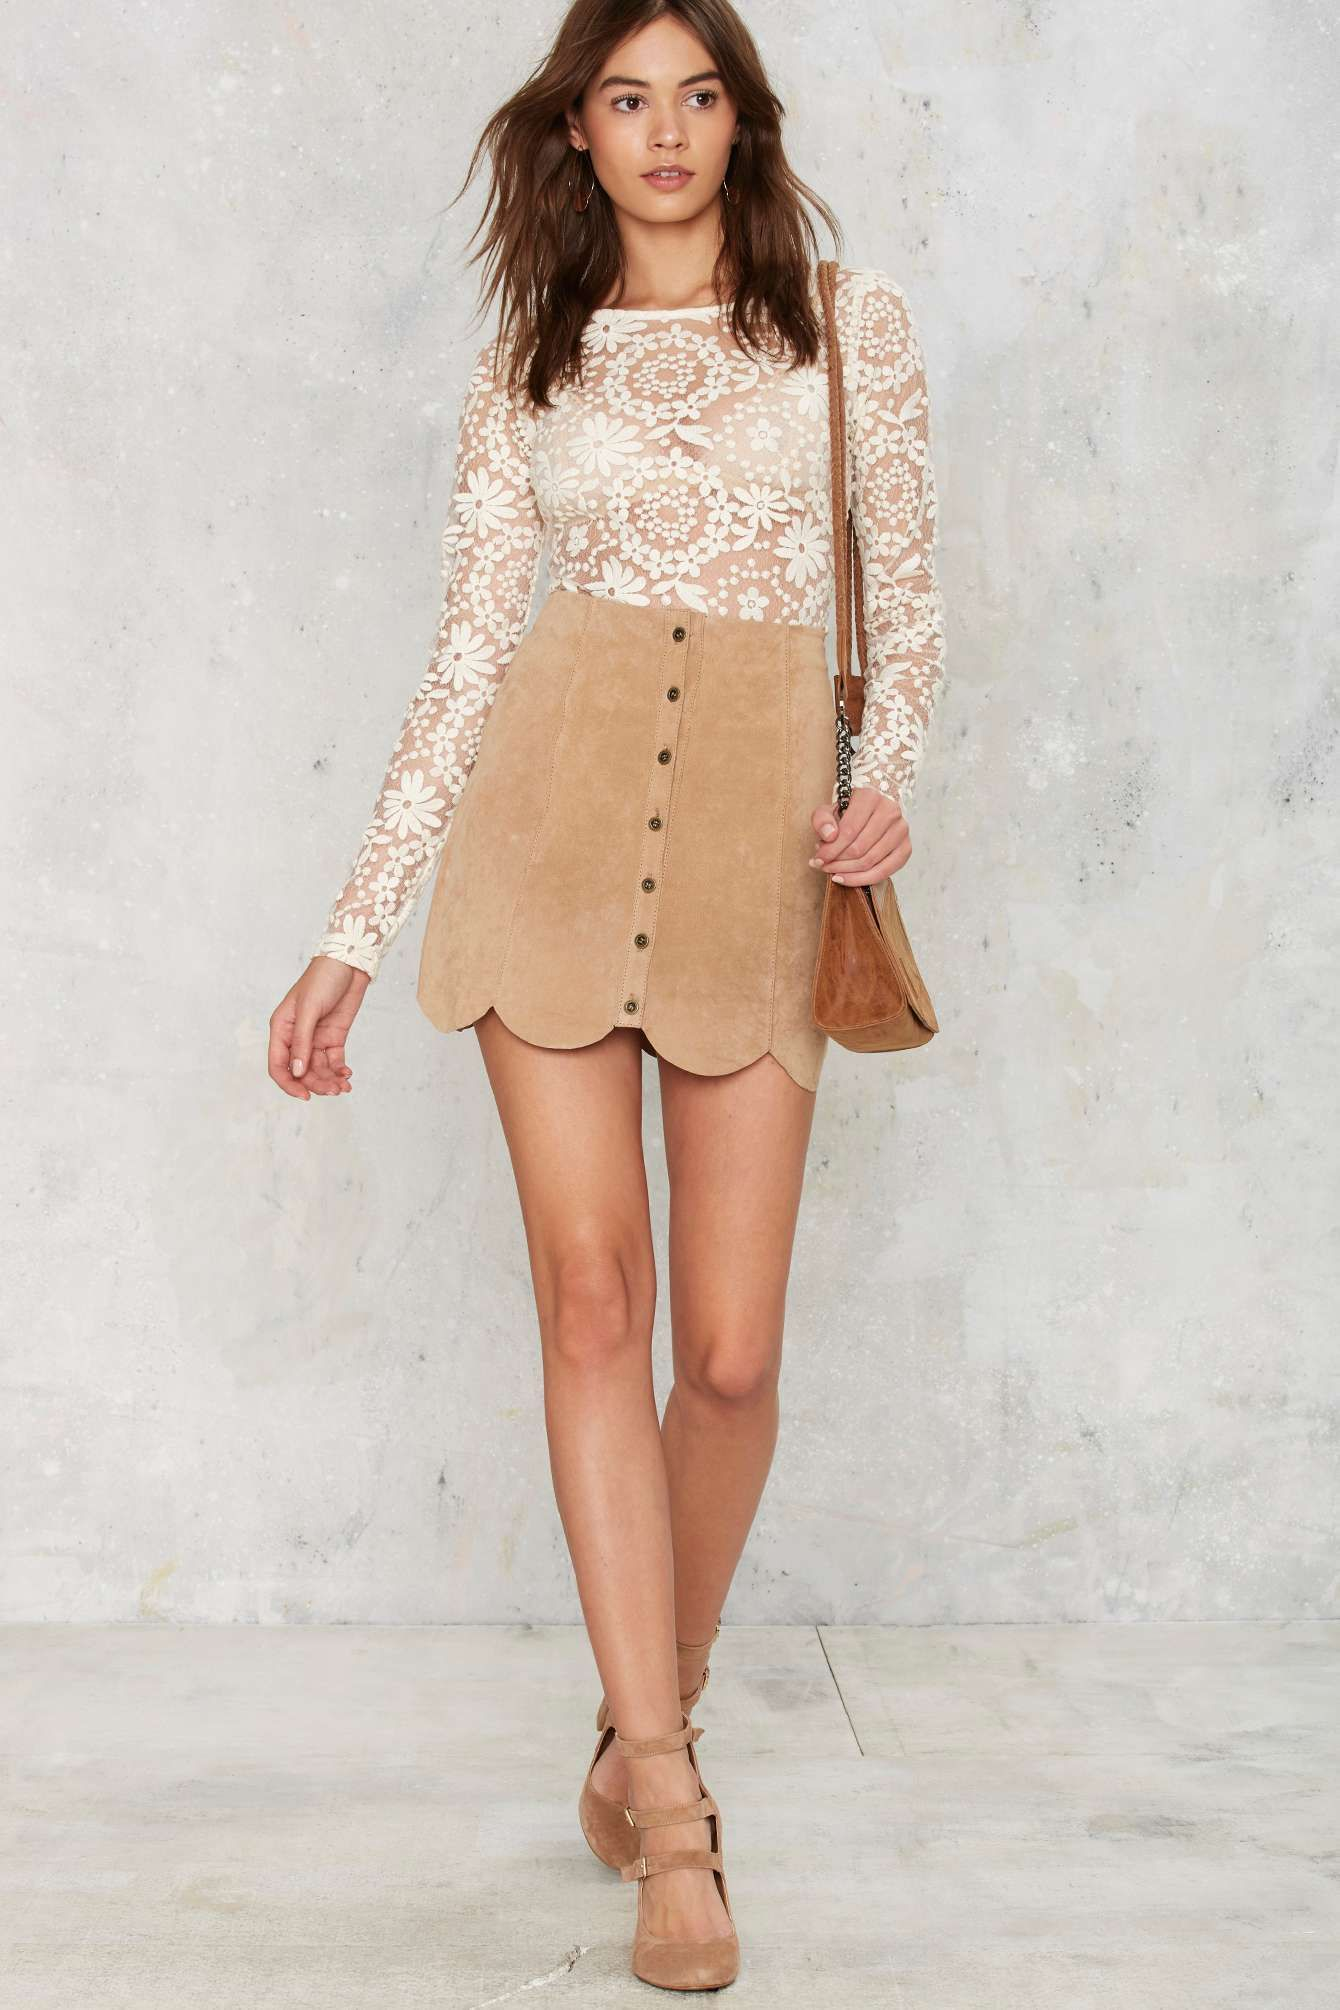 Lace bodysuit looks  Dawn of a New Daisy Lace Bodysuit  Shop Clothes at Nasty Gal